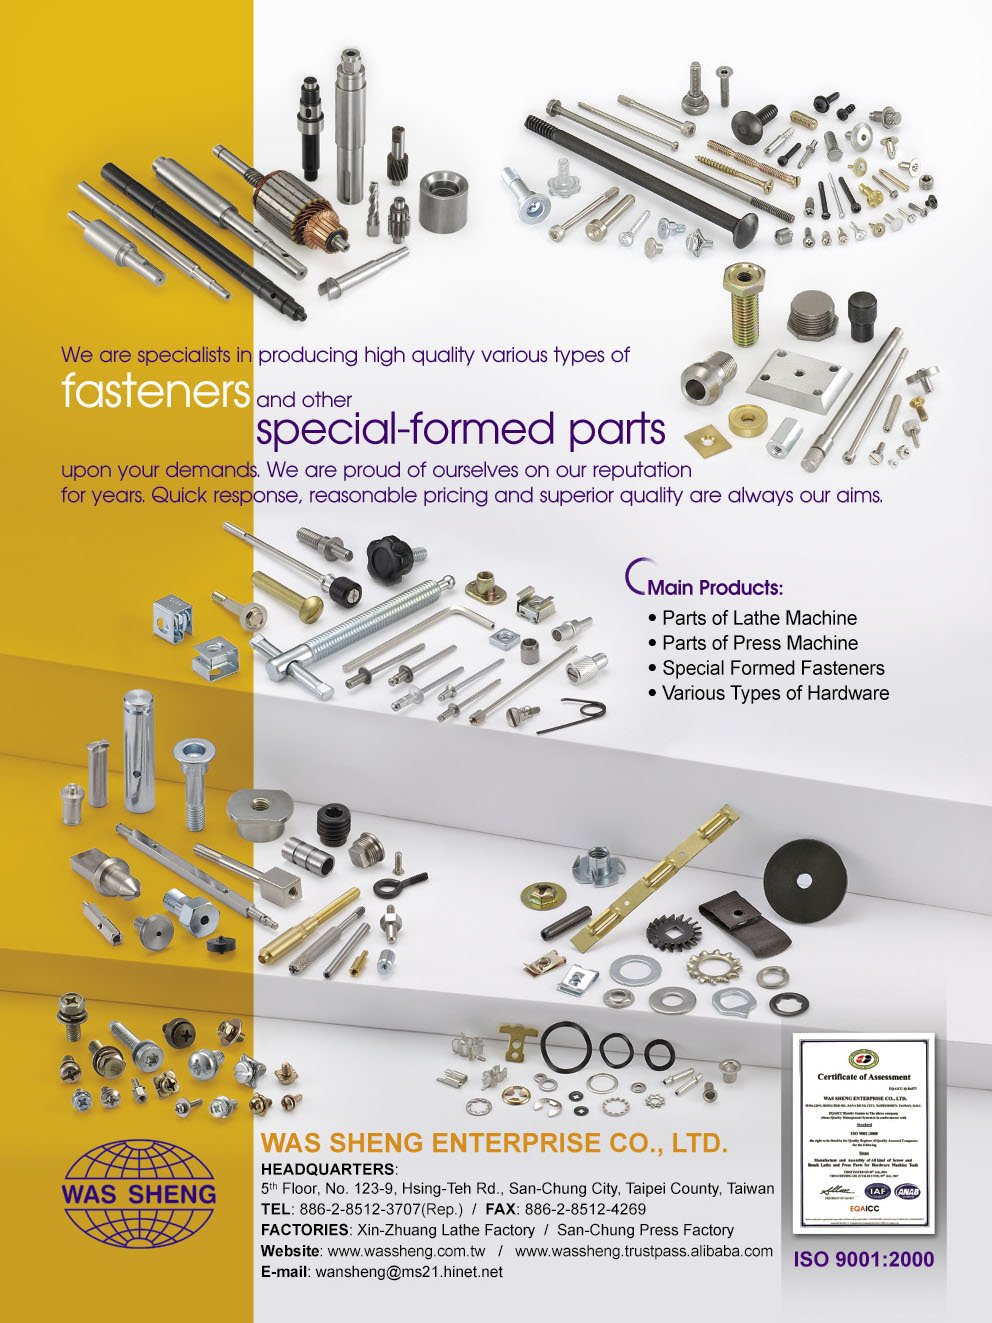 Being Dedicated to Development of High Value Added Fasteners and